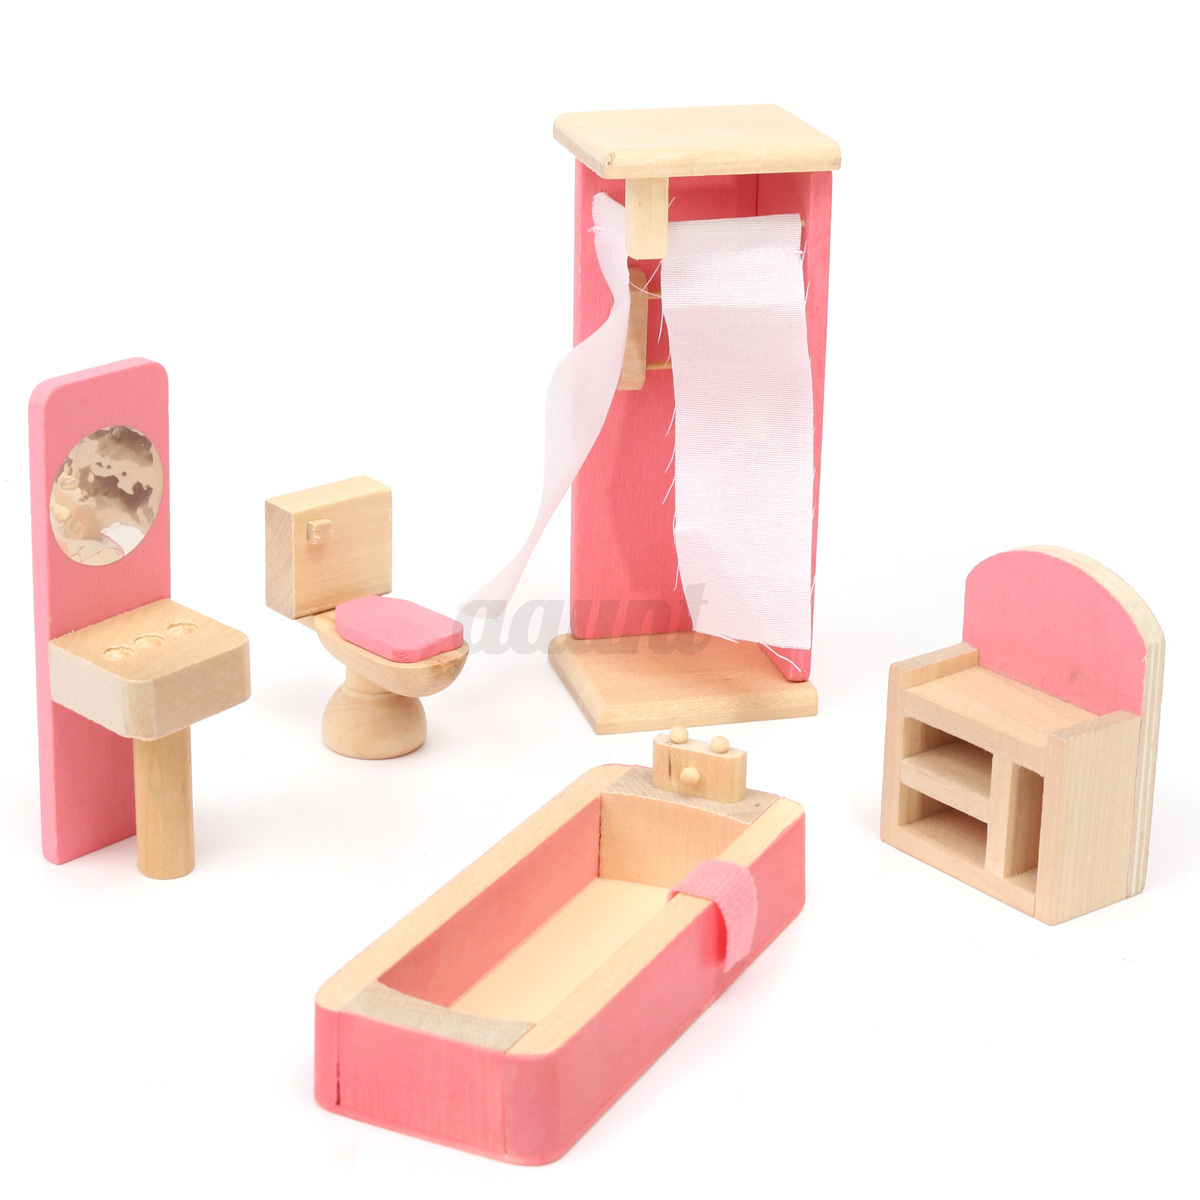 miniature house family children wooden furniture doll set kit toys accessories ebay. Black Bedroom Furniture Sets. Home Design Ideas